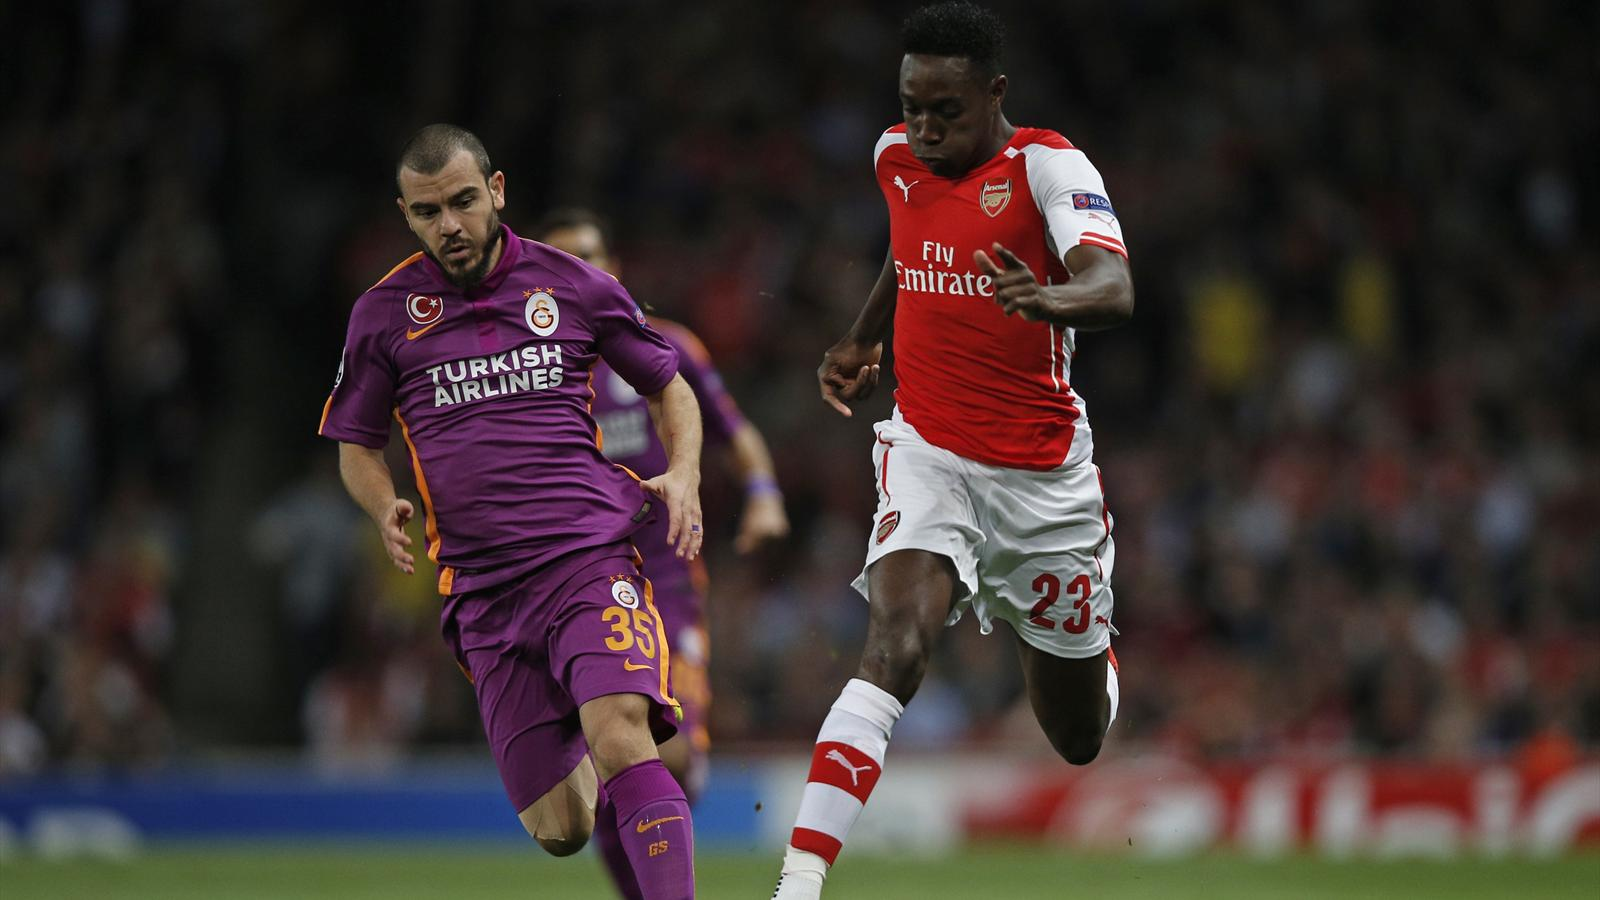 Match Galatasaray vs Arsenal en direct live streaming